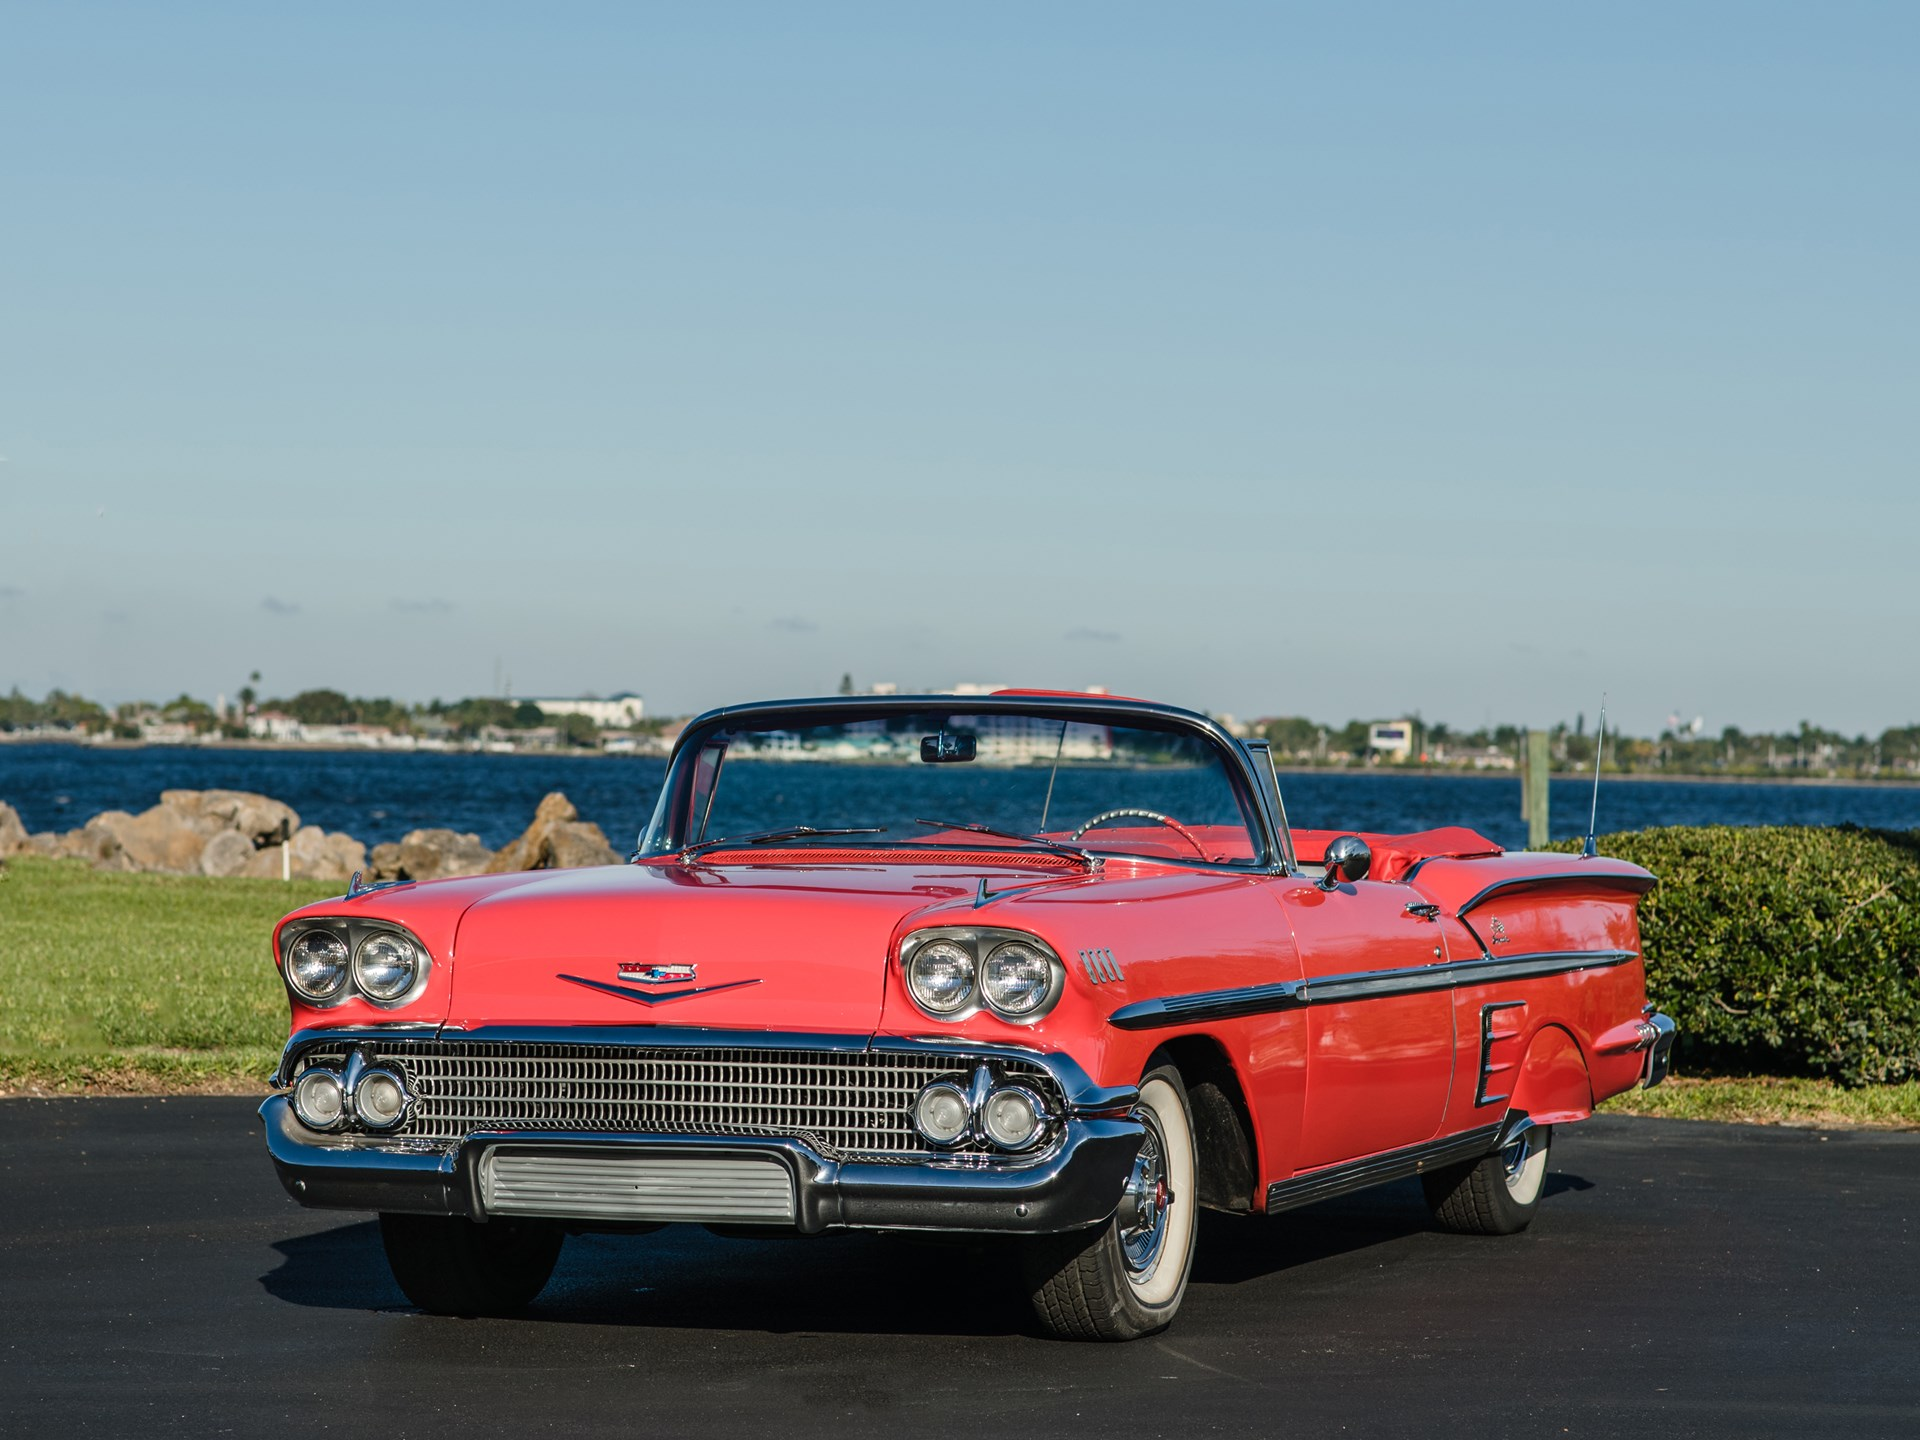 1958 Chevrolet Impala Convertible sold for $63,800